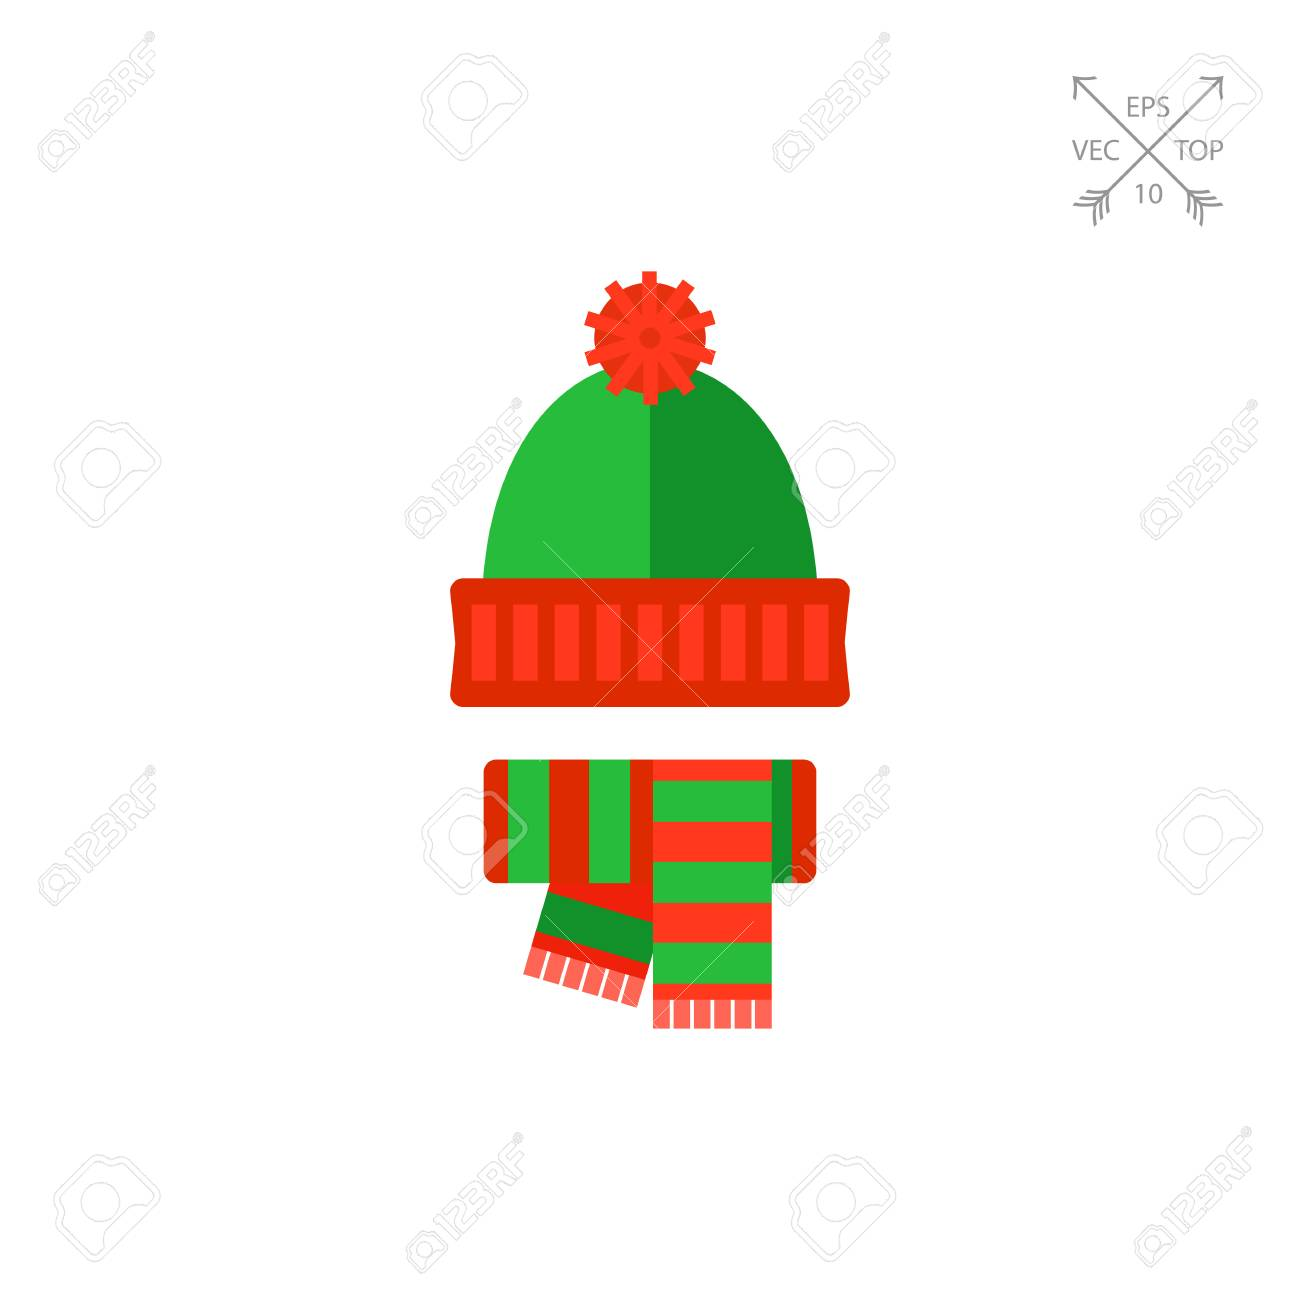 e8ab3a844a6c0 Winter knit hat and scarf vector icon Stock Vector - 75537473